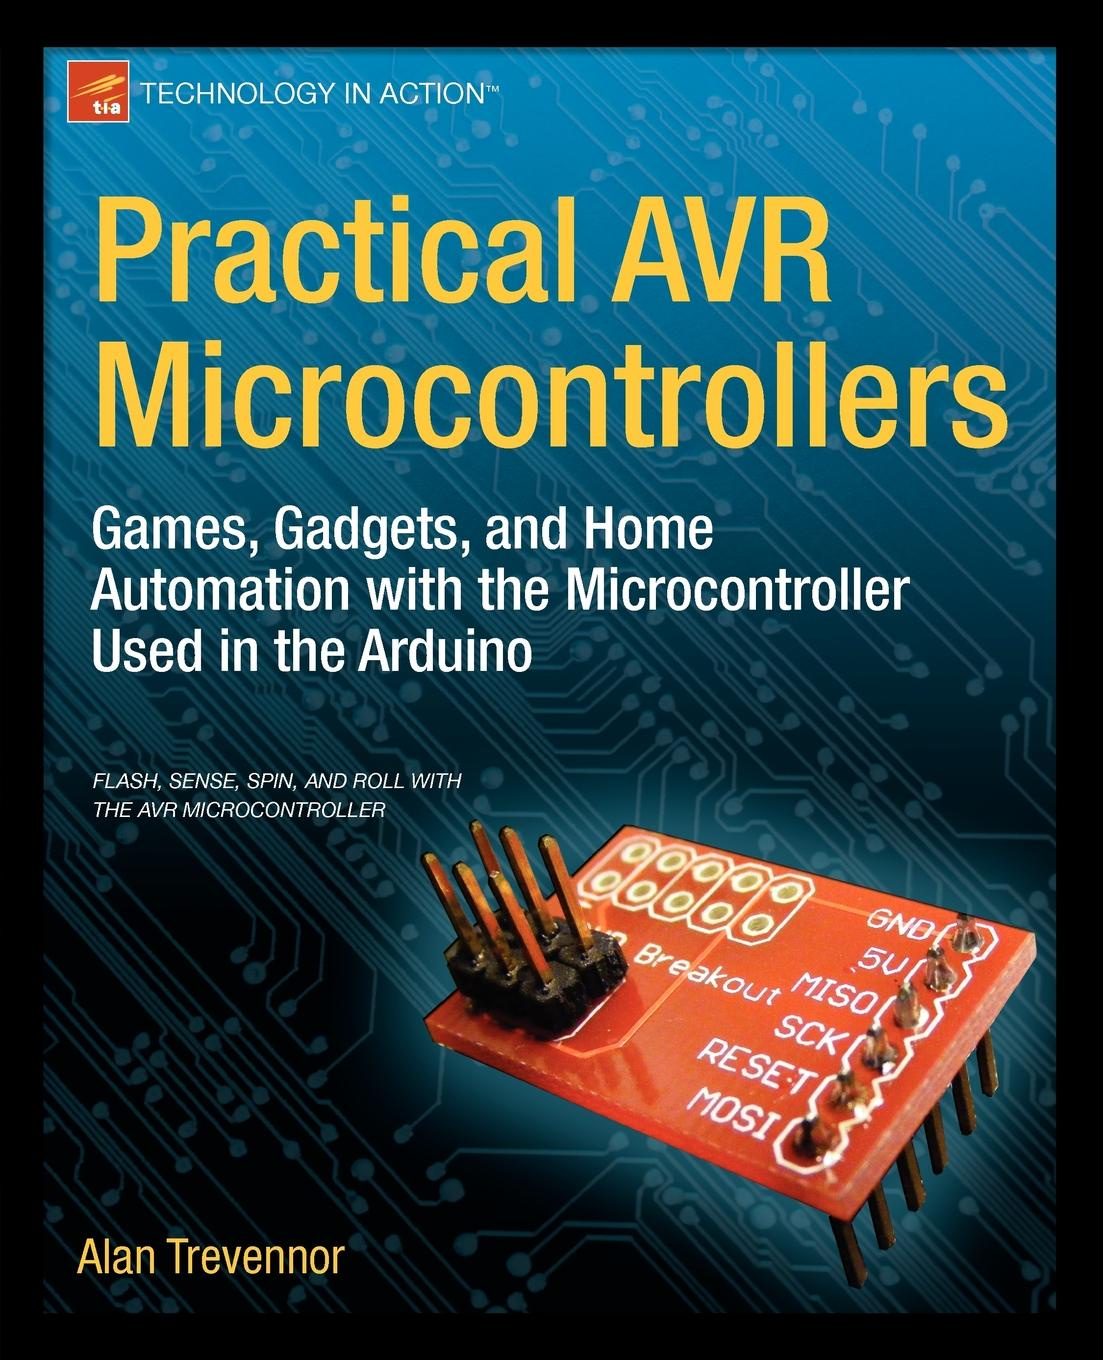 цена на Alan Trevennor Practical Avr Microcontrollers. Games, Gadgets, and Home Automation with the Microcontroller Used in the Arduino